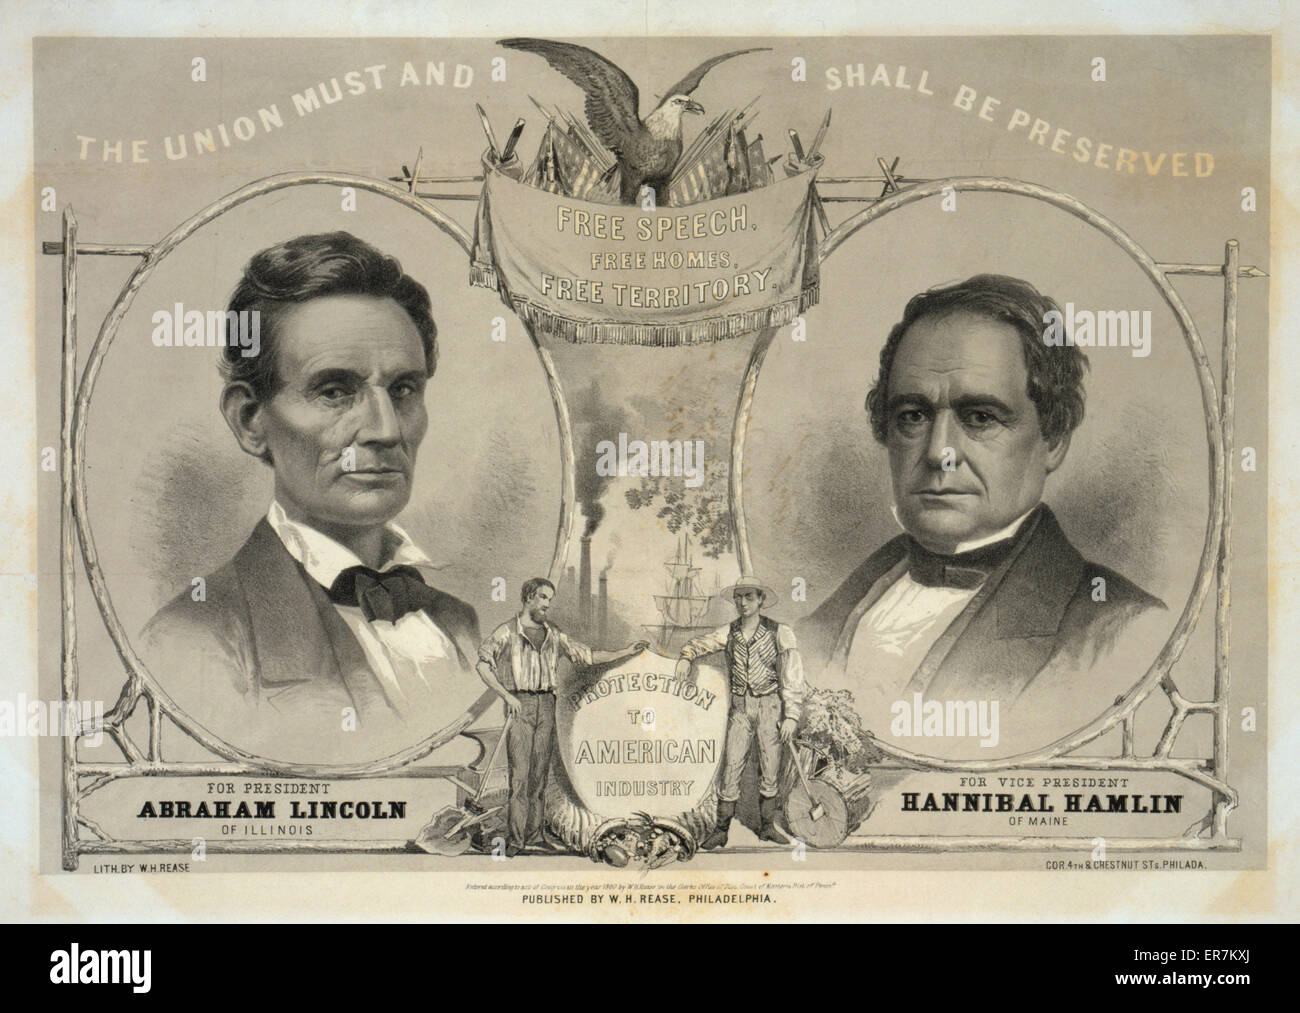 The Union must and shall be preserved. For President Abraham Lincoln of Illinois. For Vice President Hannibal Hamlin - Stock Image